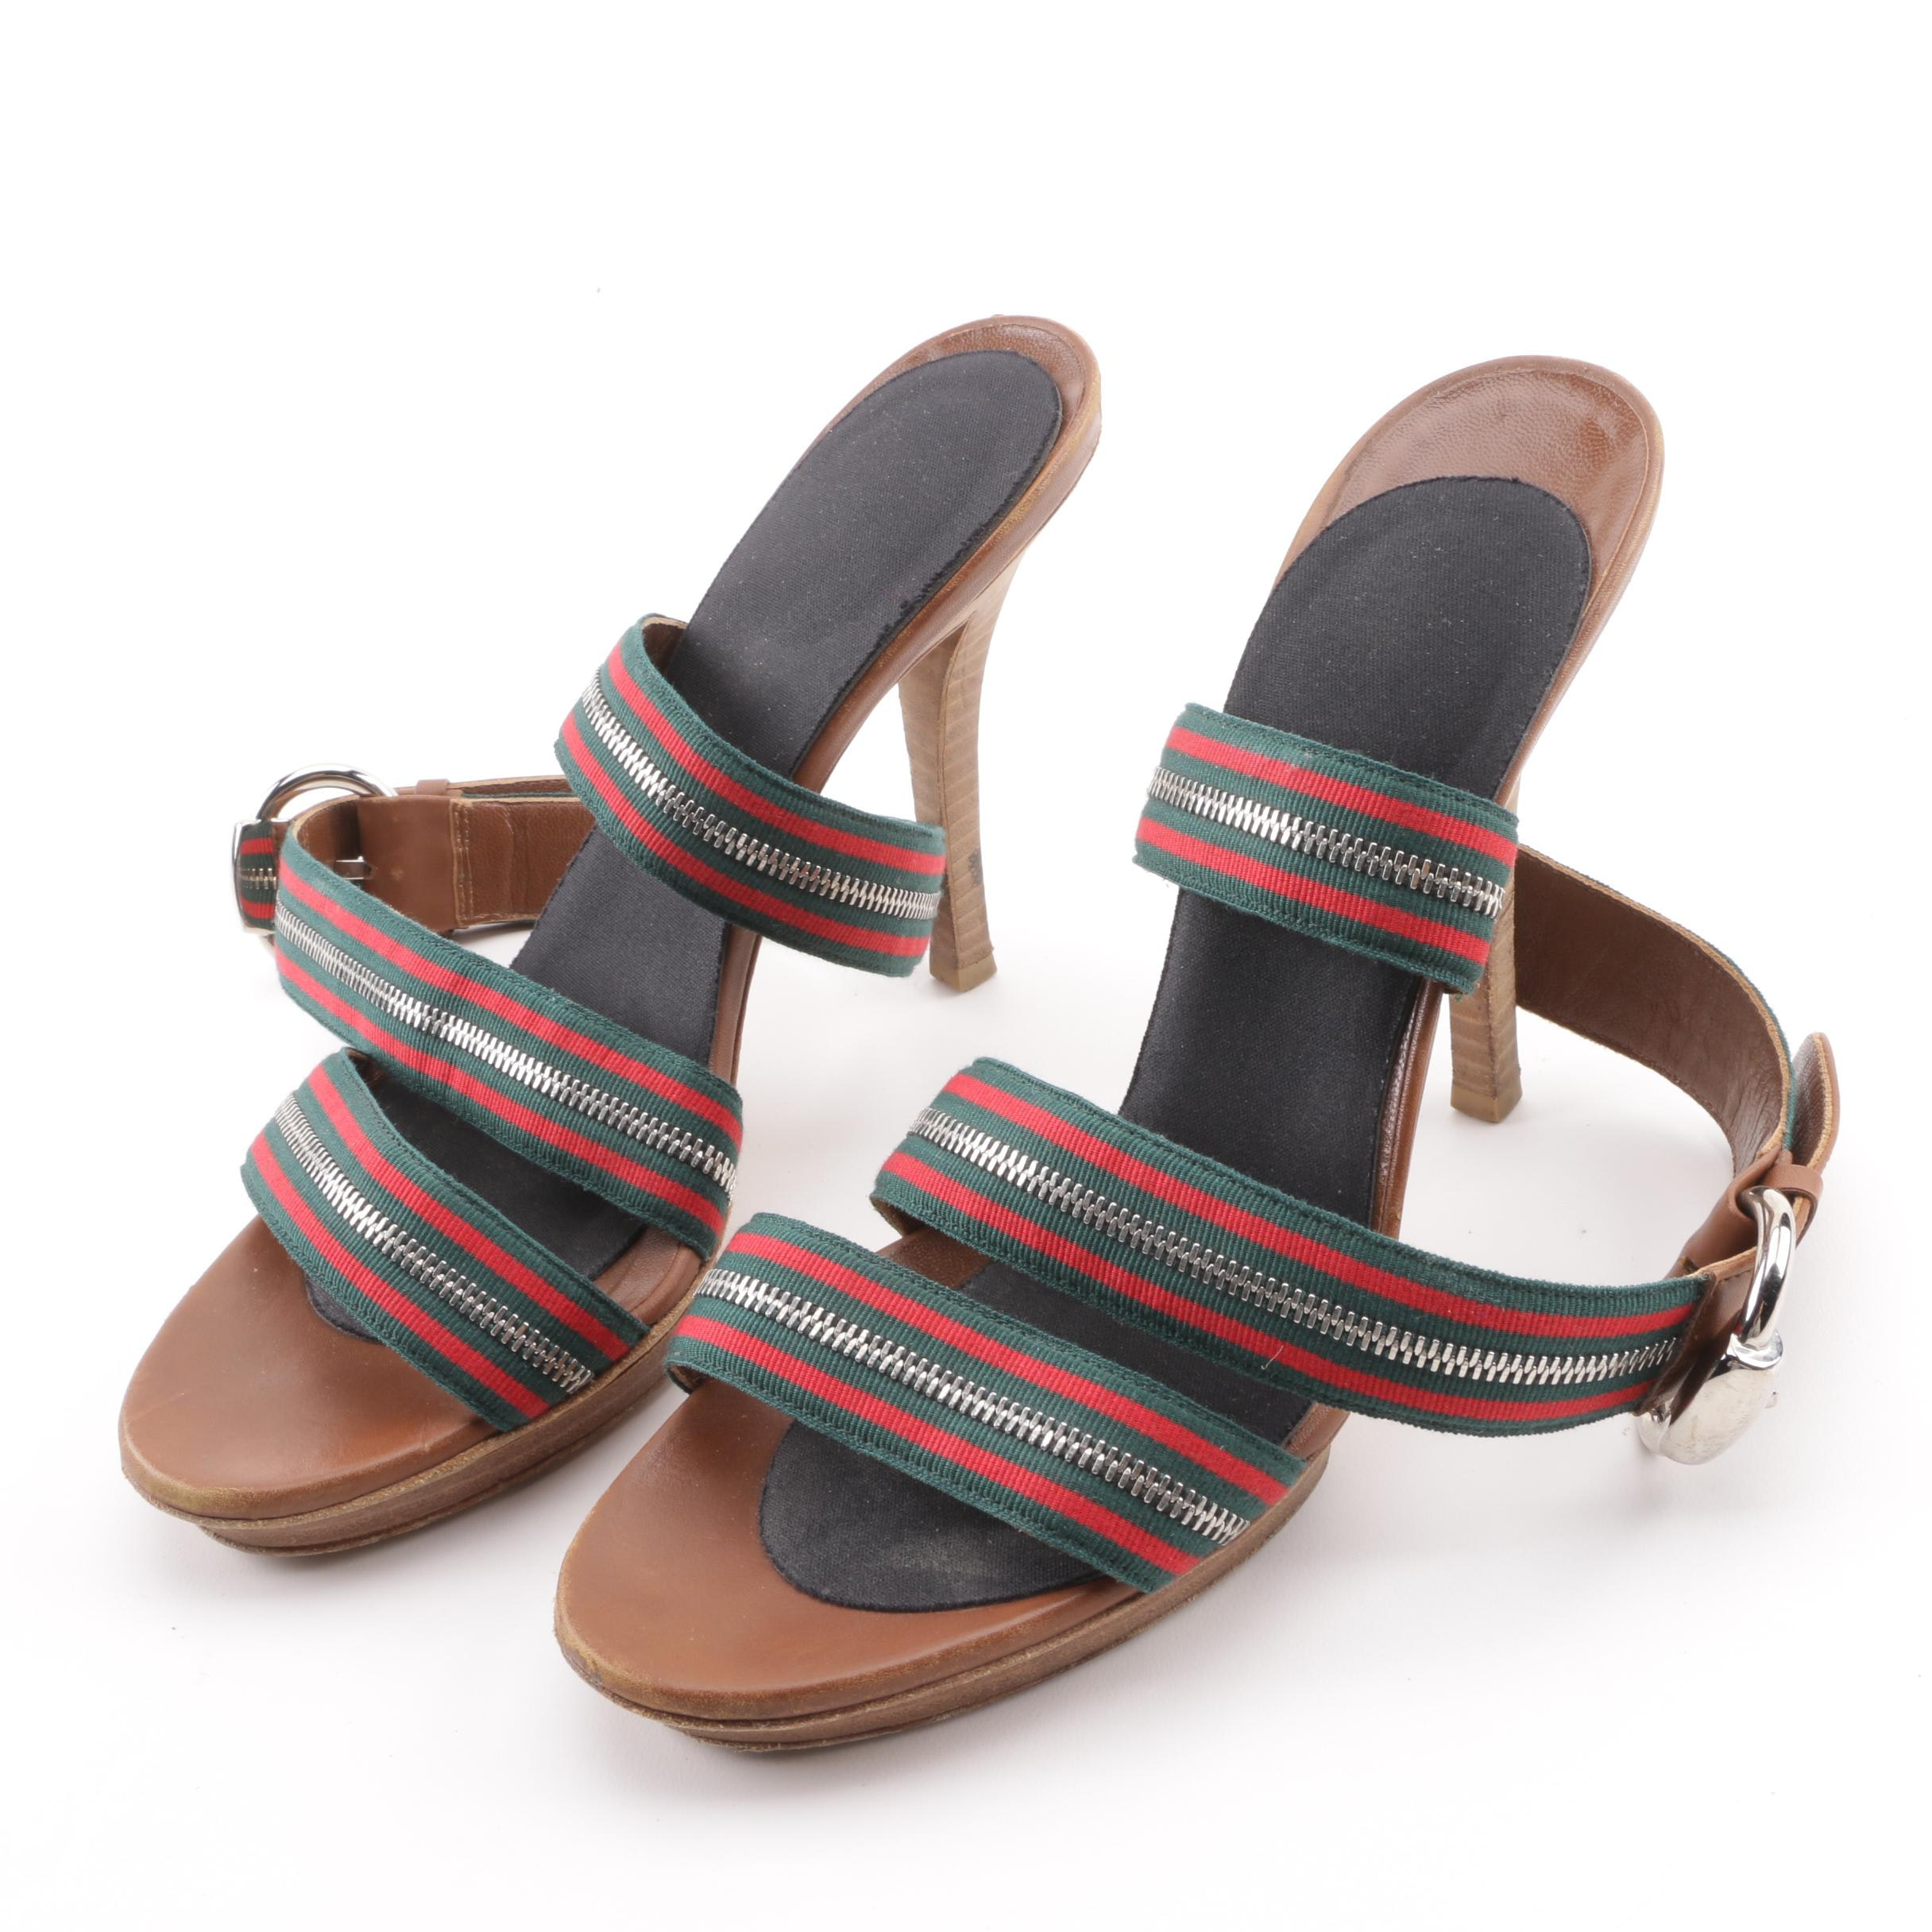 Gucci Web Crossover Platform Sandals with Zipper Accents